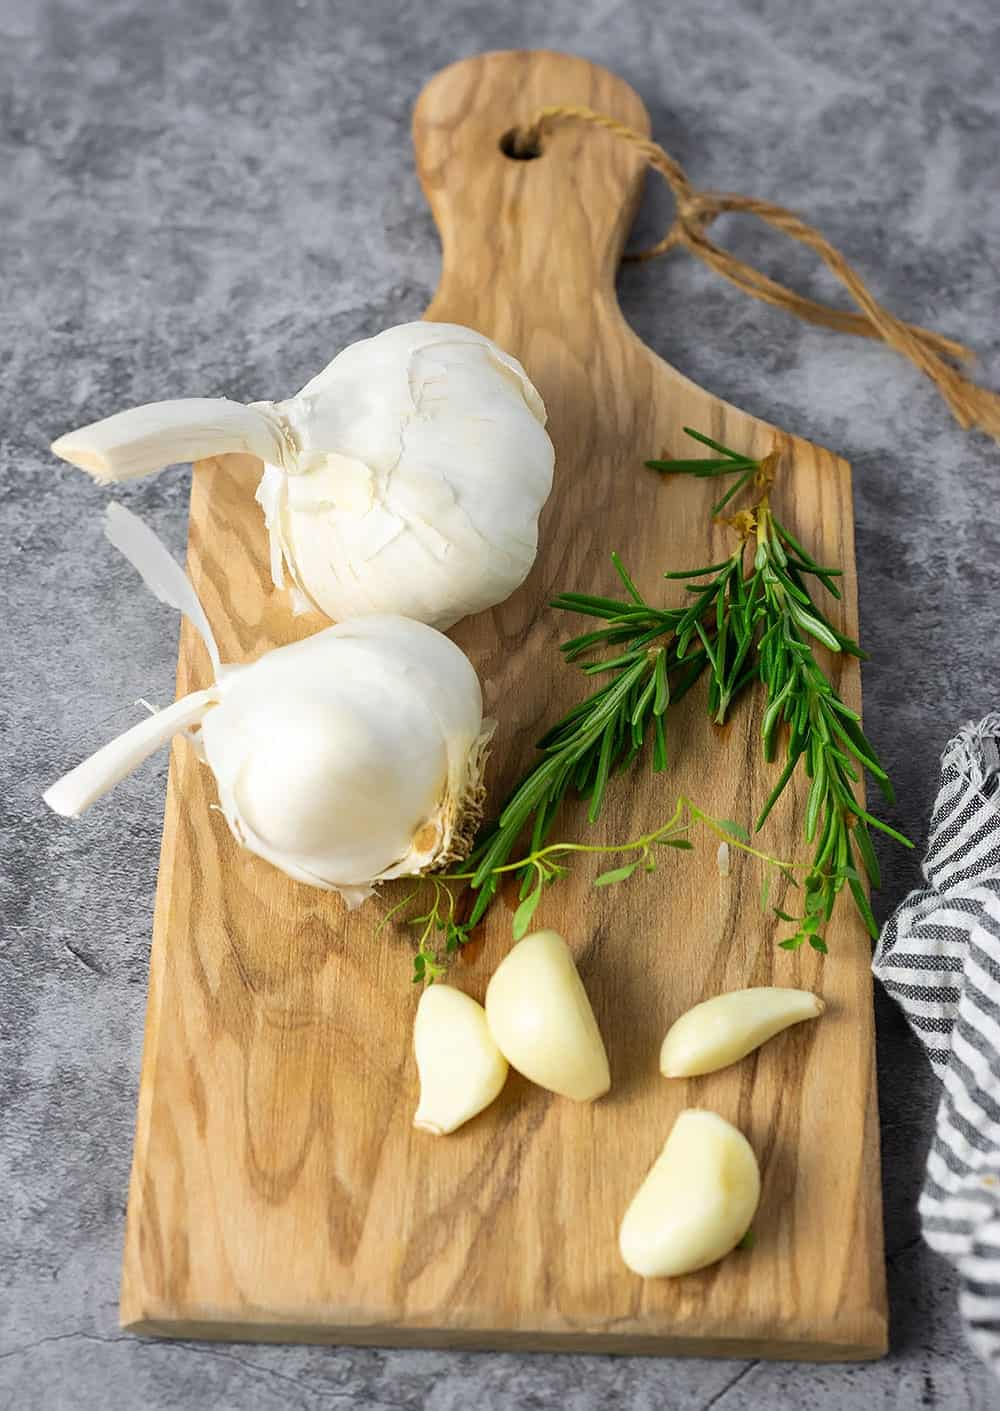 Garlic confit ingredients